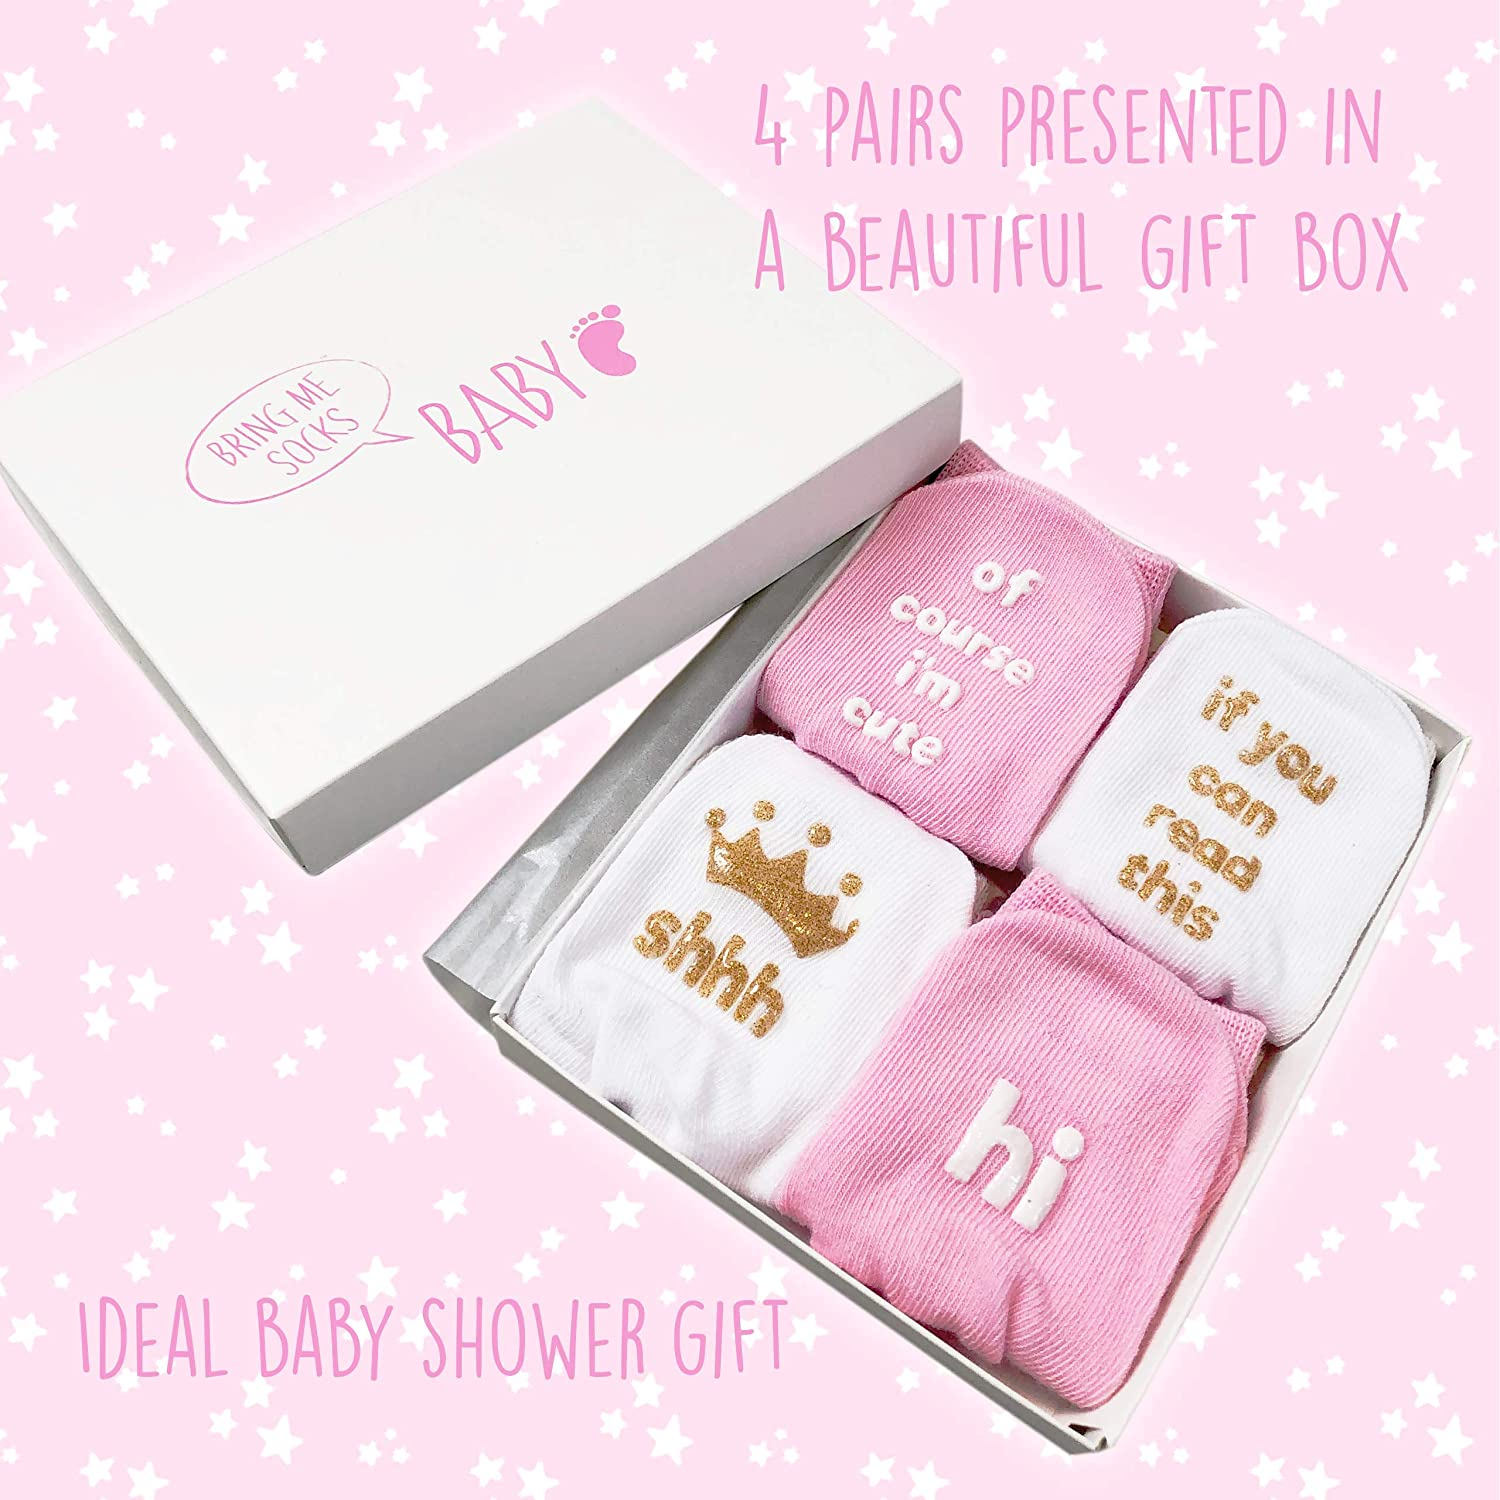 Unique Baby Shower or Newborn Gift For Her 4 Pairs of Cute Quotes in Gift Box Baby Girl Socks Gift Set